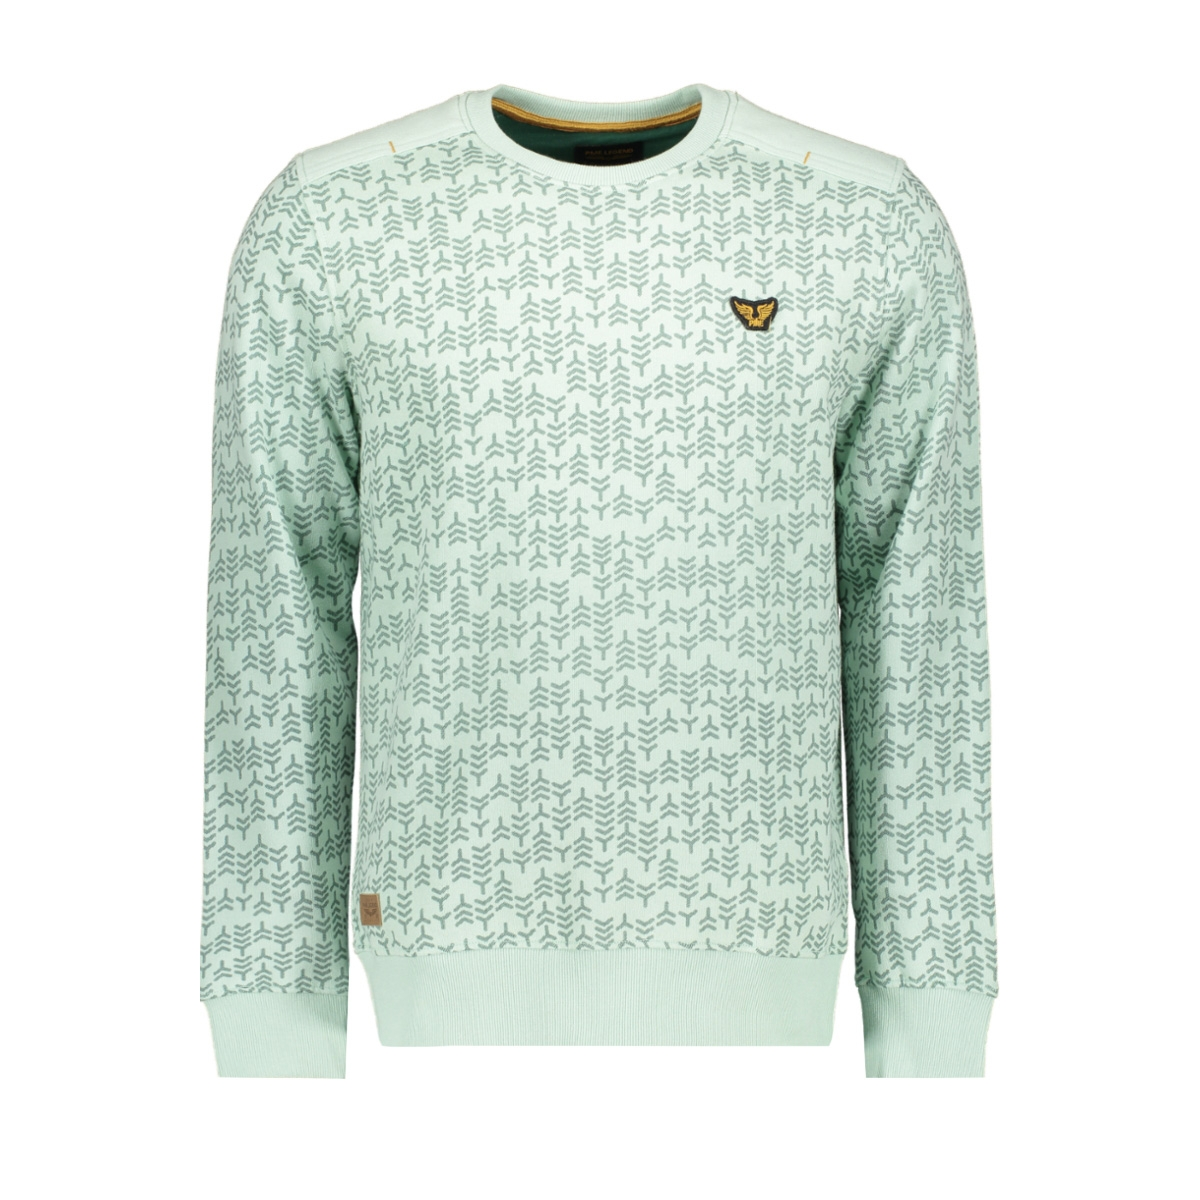 psw191410 pme legend sweater 6174